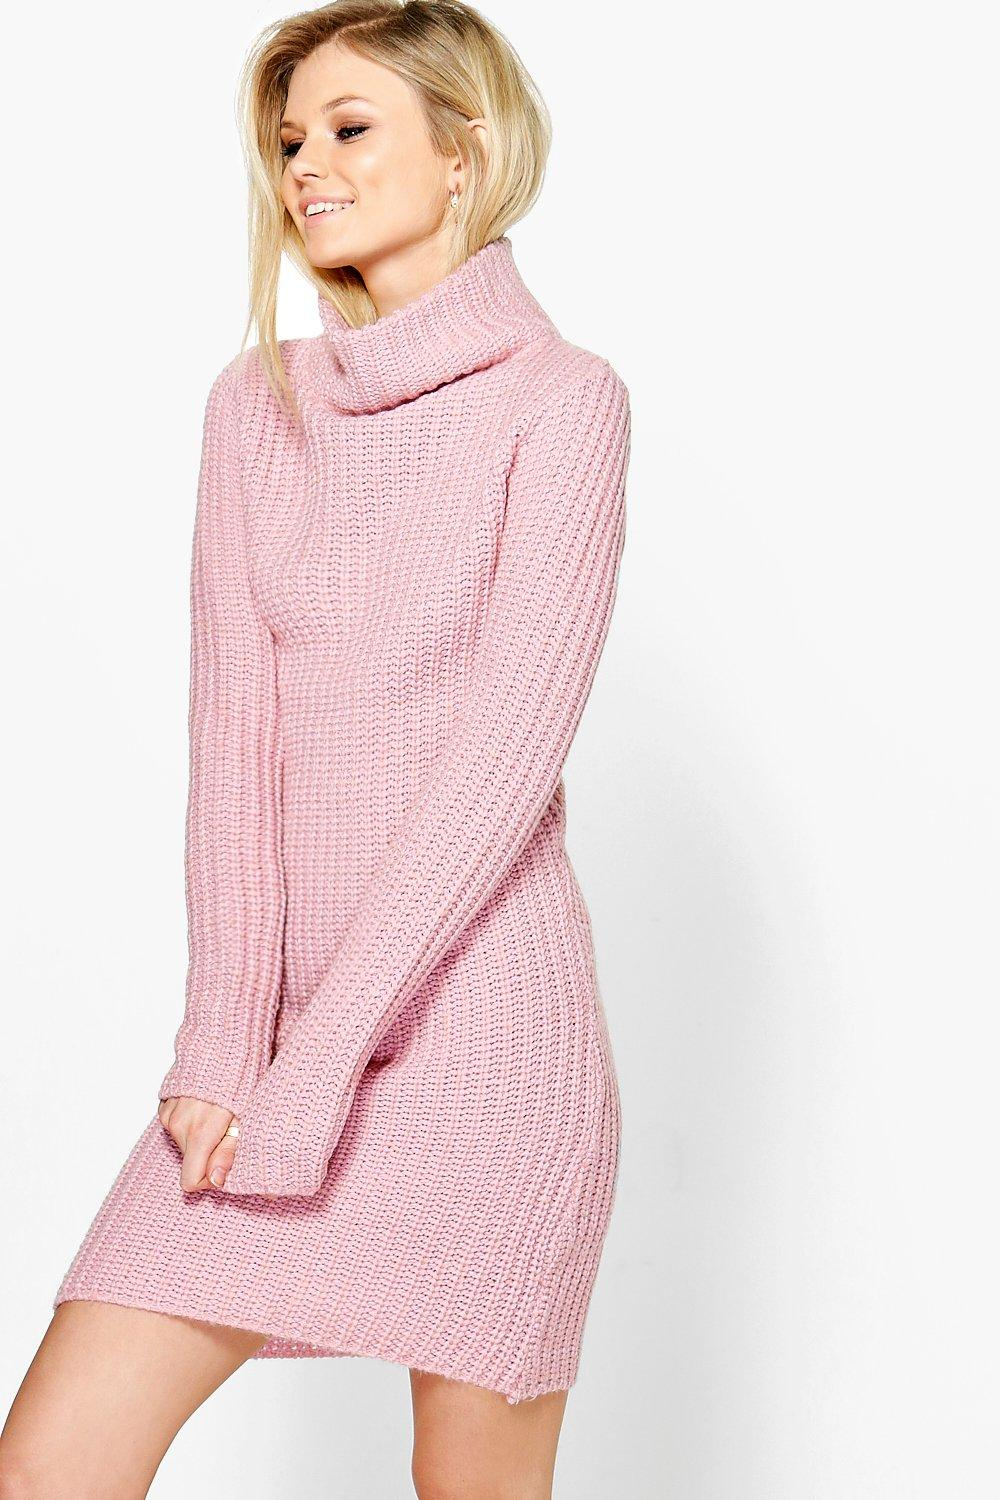 84dafab6ad Darcy Funnel Neck Soft Knit Jumper Dress